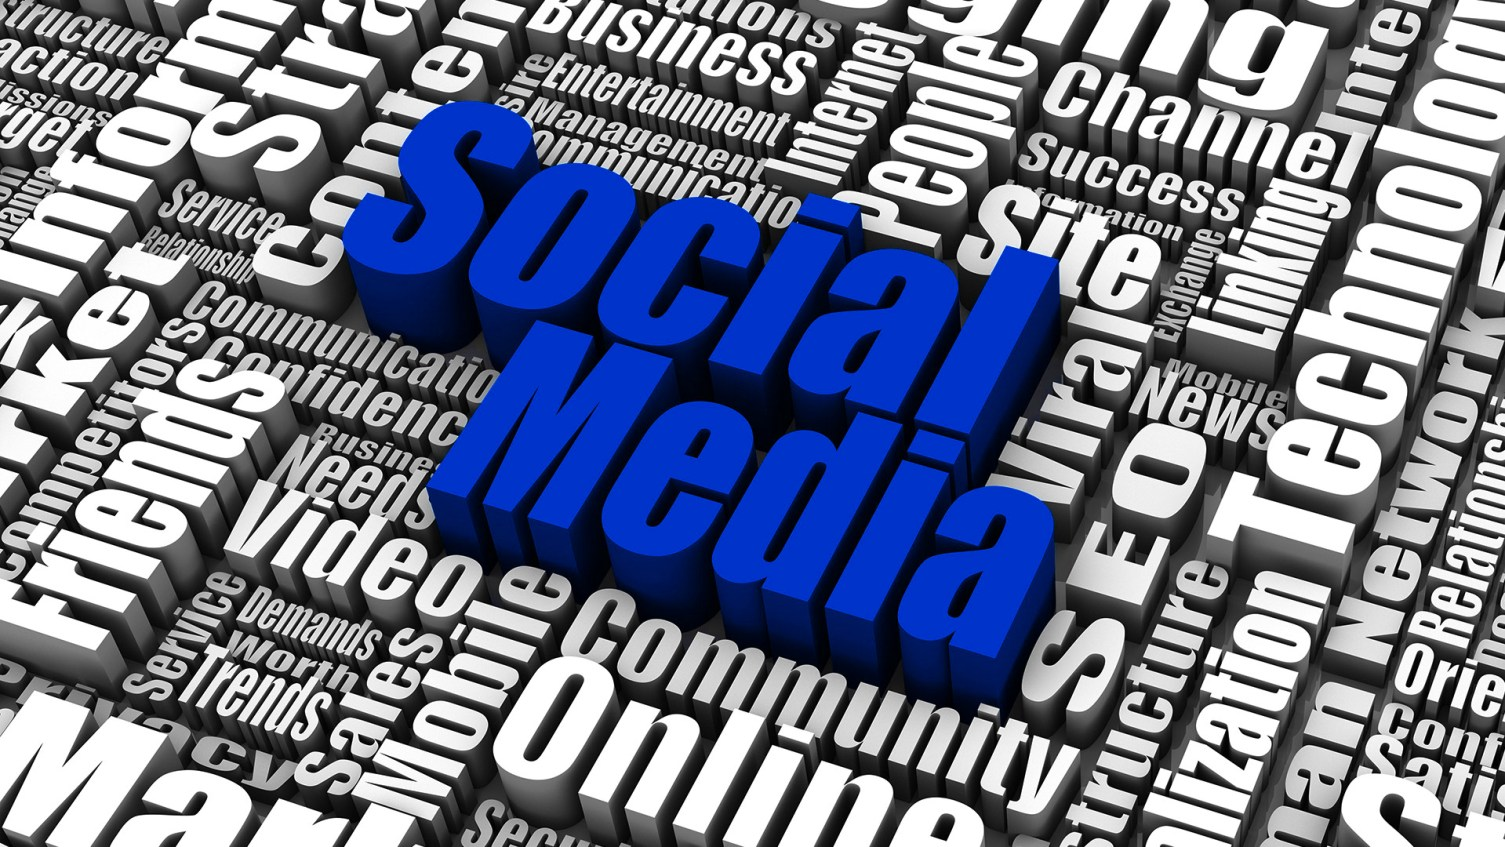 How To Increase Brand Awareness With Social Media